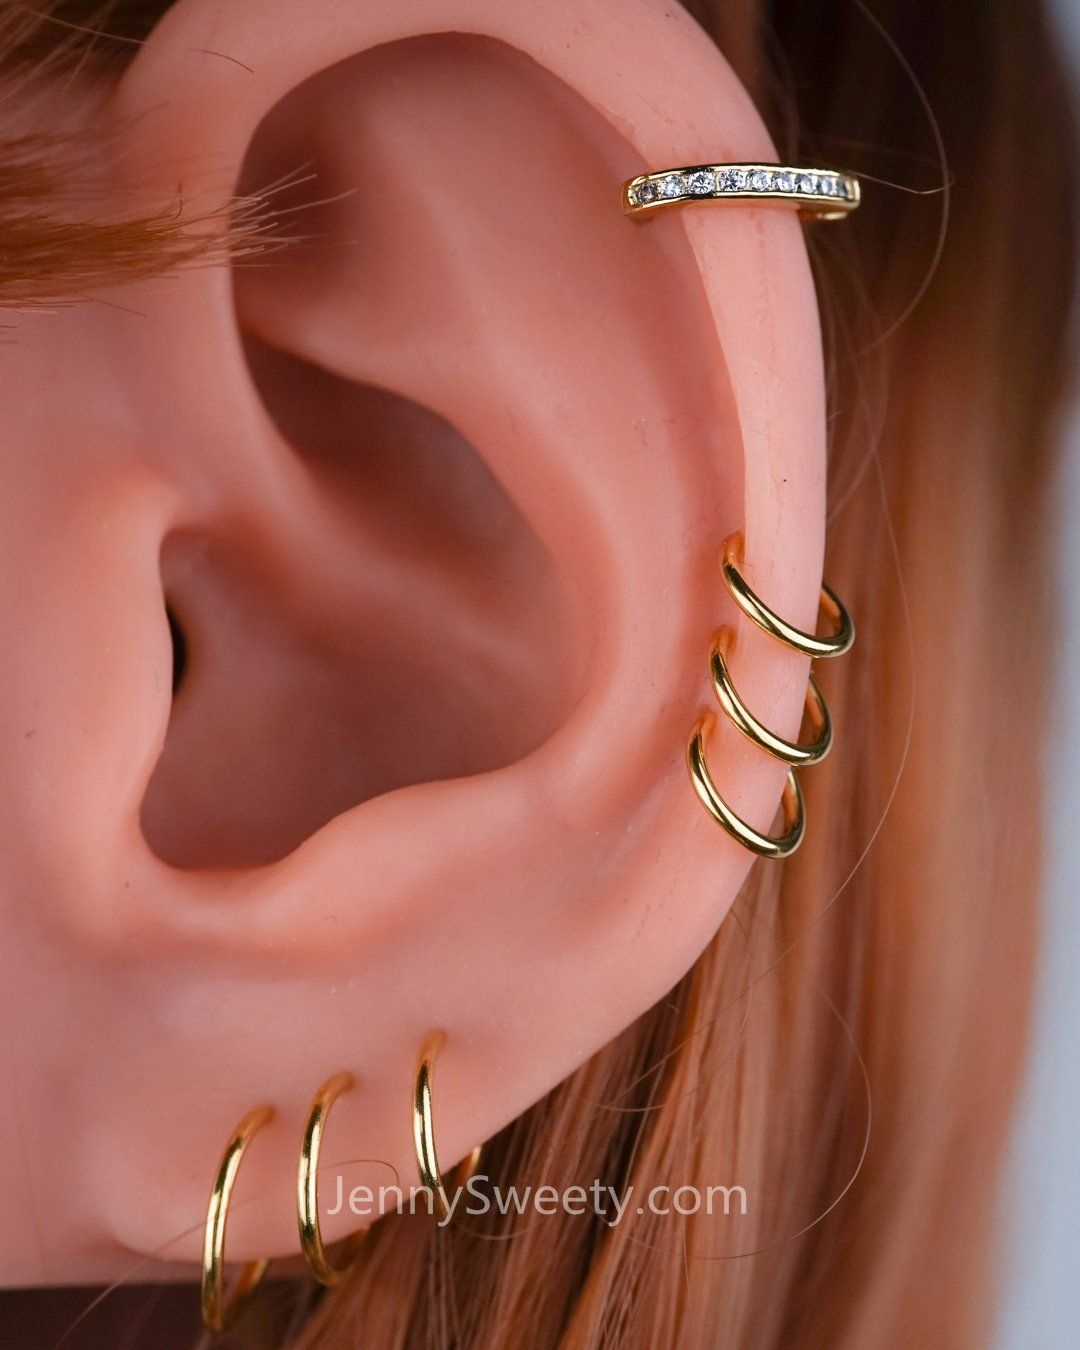 ear piercing trendiest of pin daith the ideas cartilage rings earrings single statement ring ringscartilage rook gold multiple